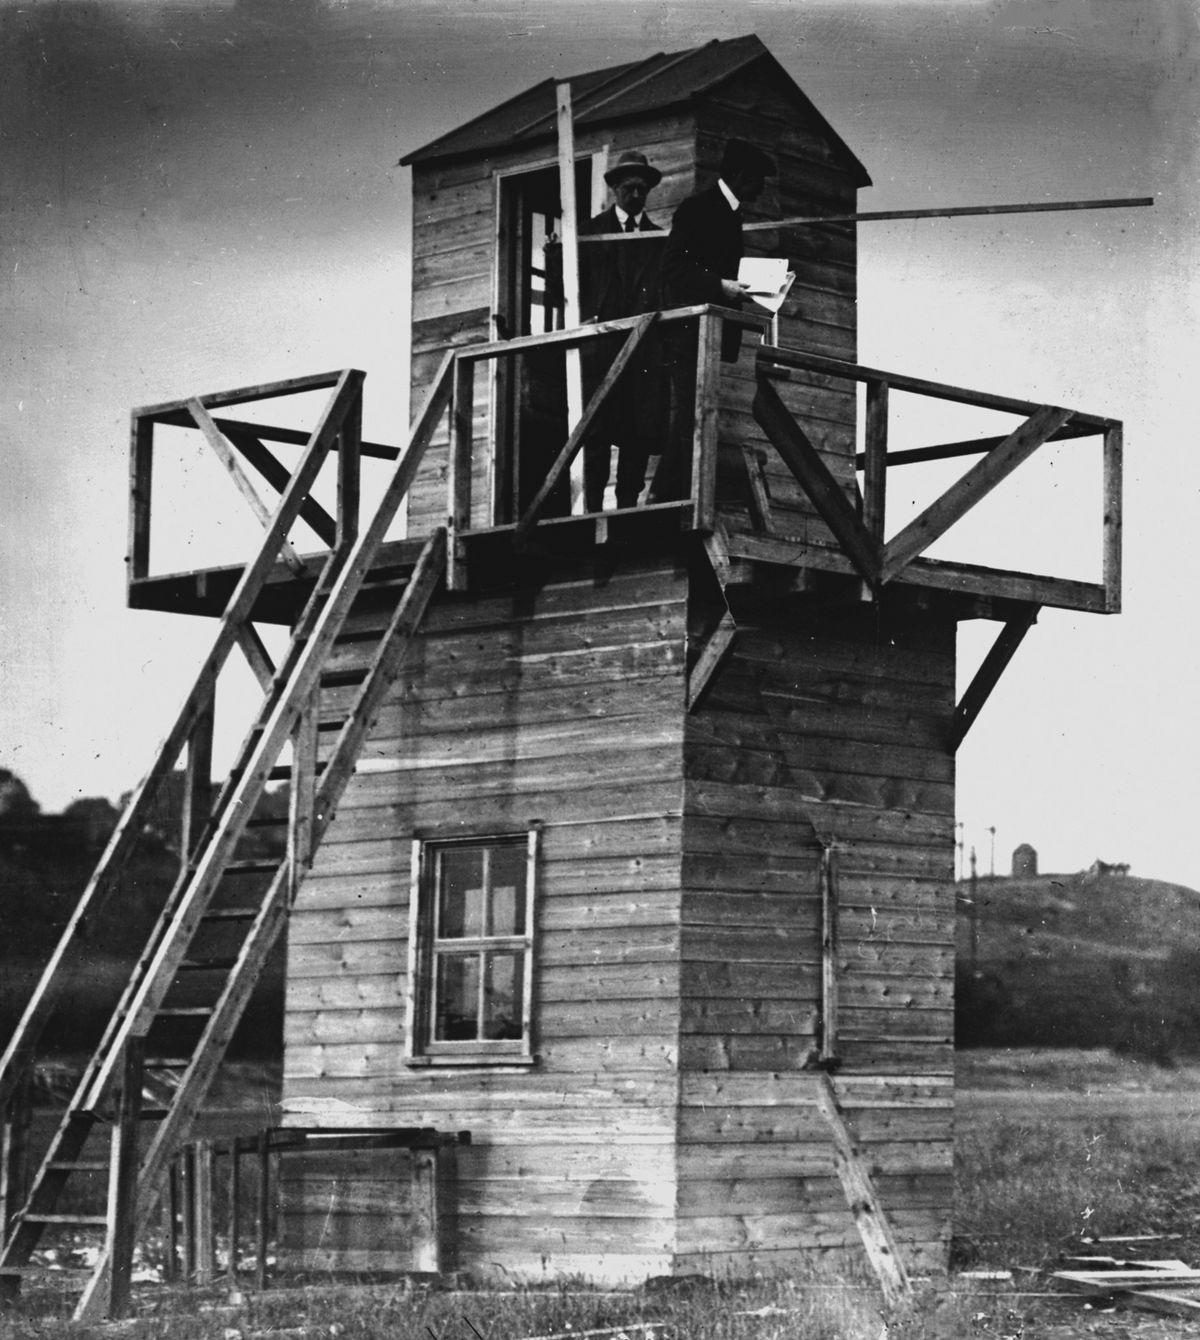 The wooden control tower at Dunstall Park erected for the flying meeting in 1910.